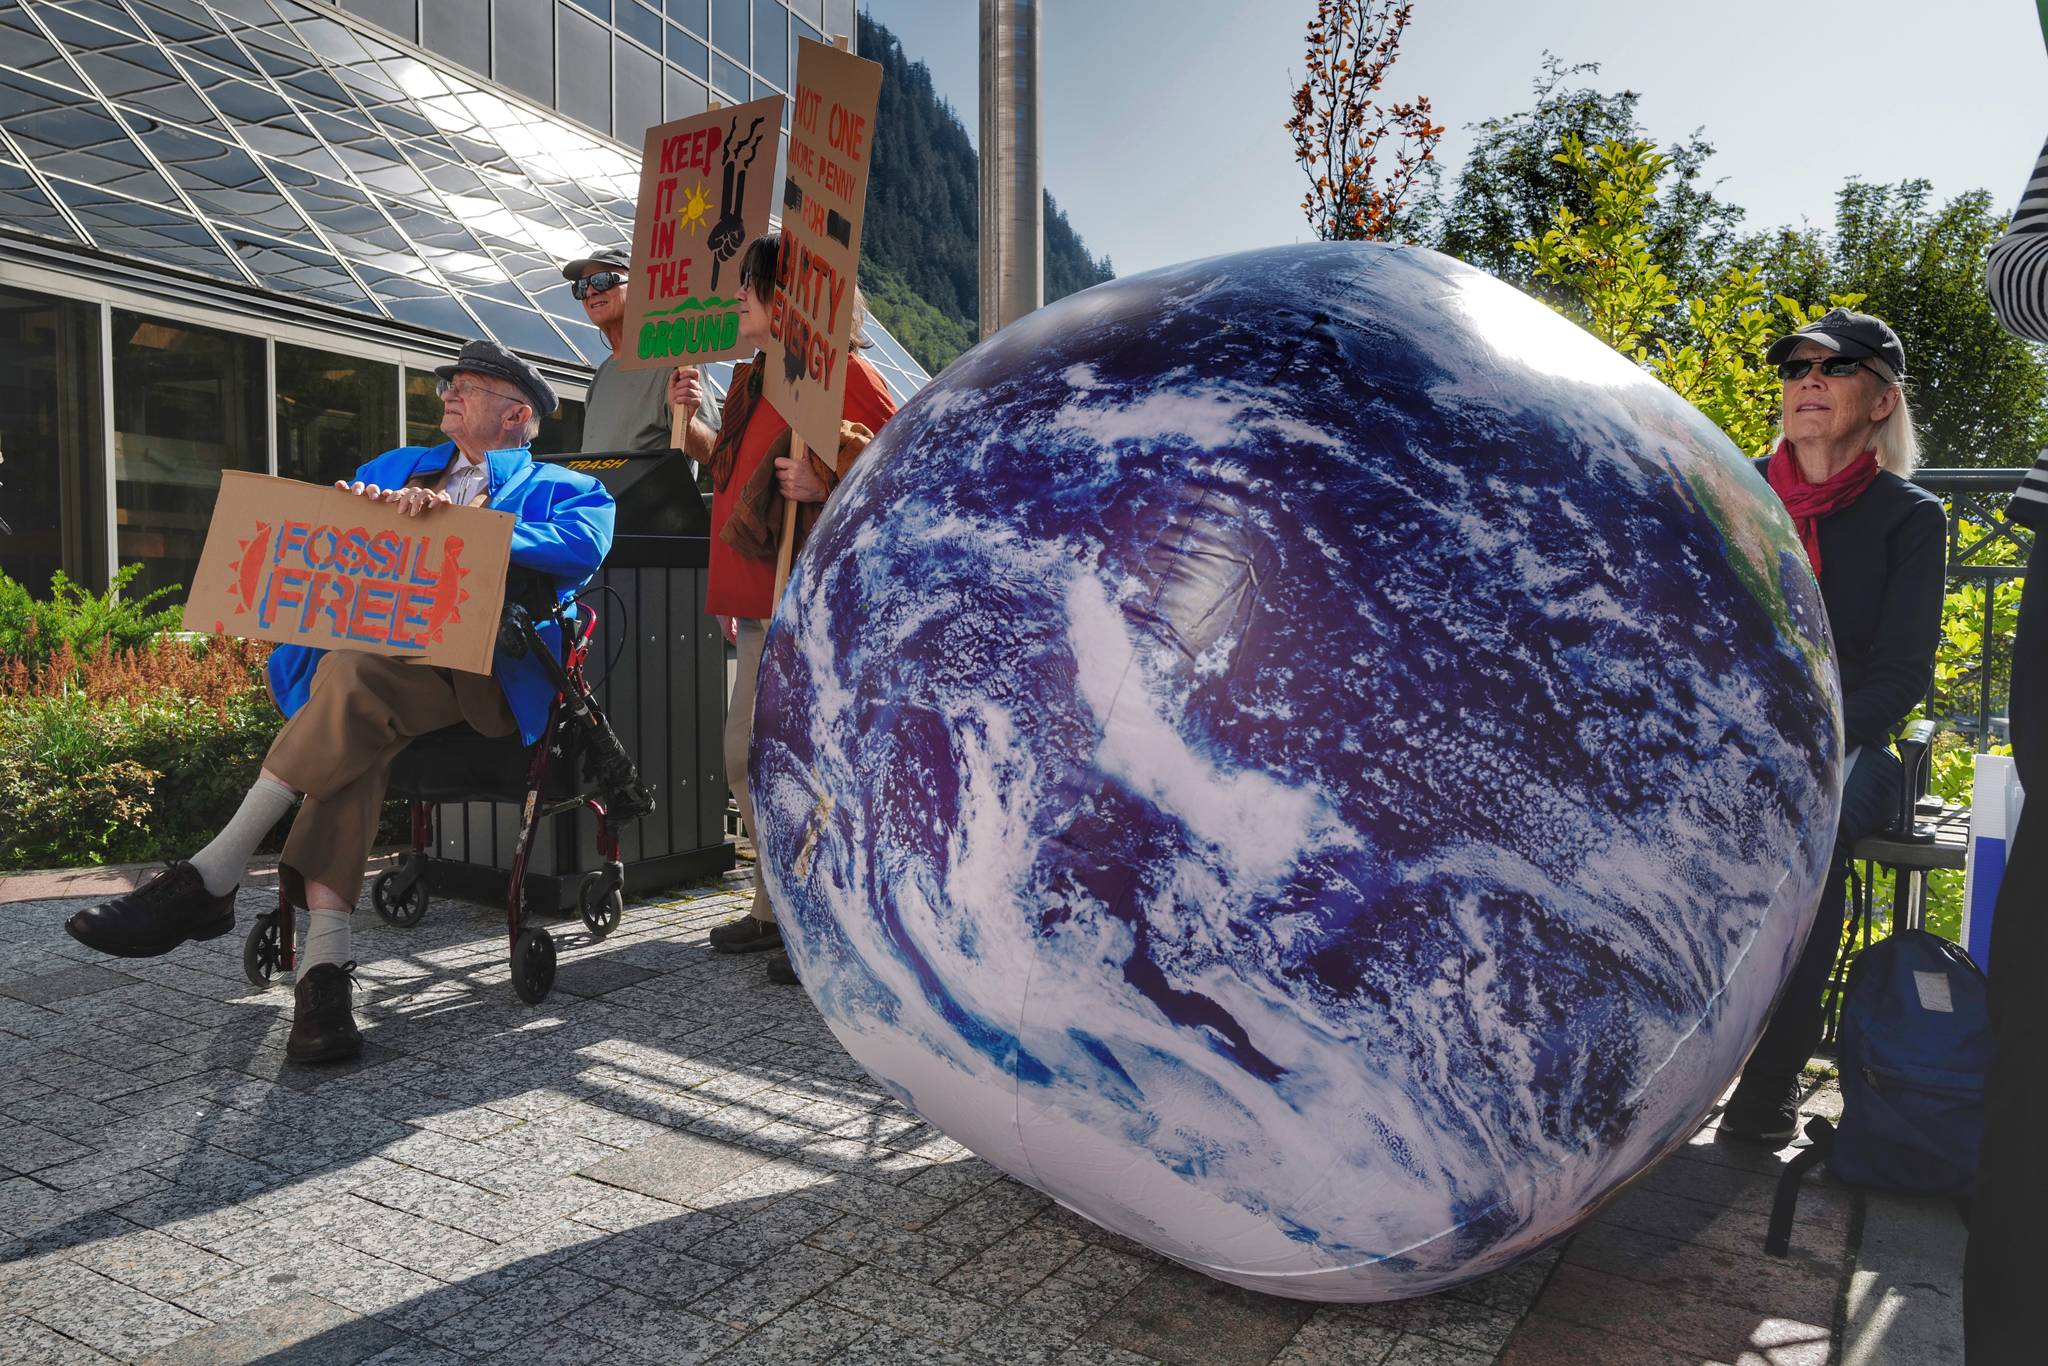 Empire Live: Climate change rally at the Capitol aims for international audience